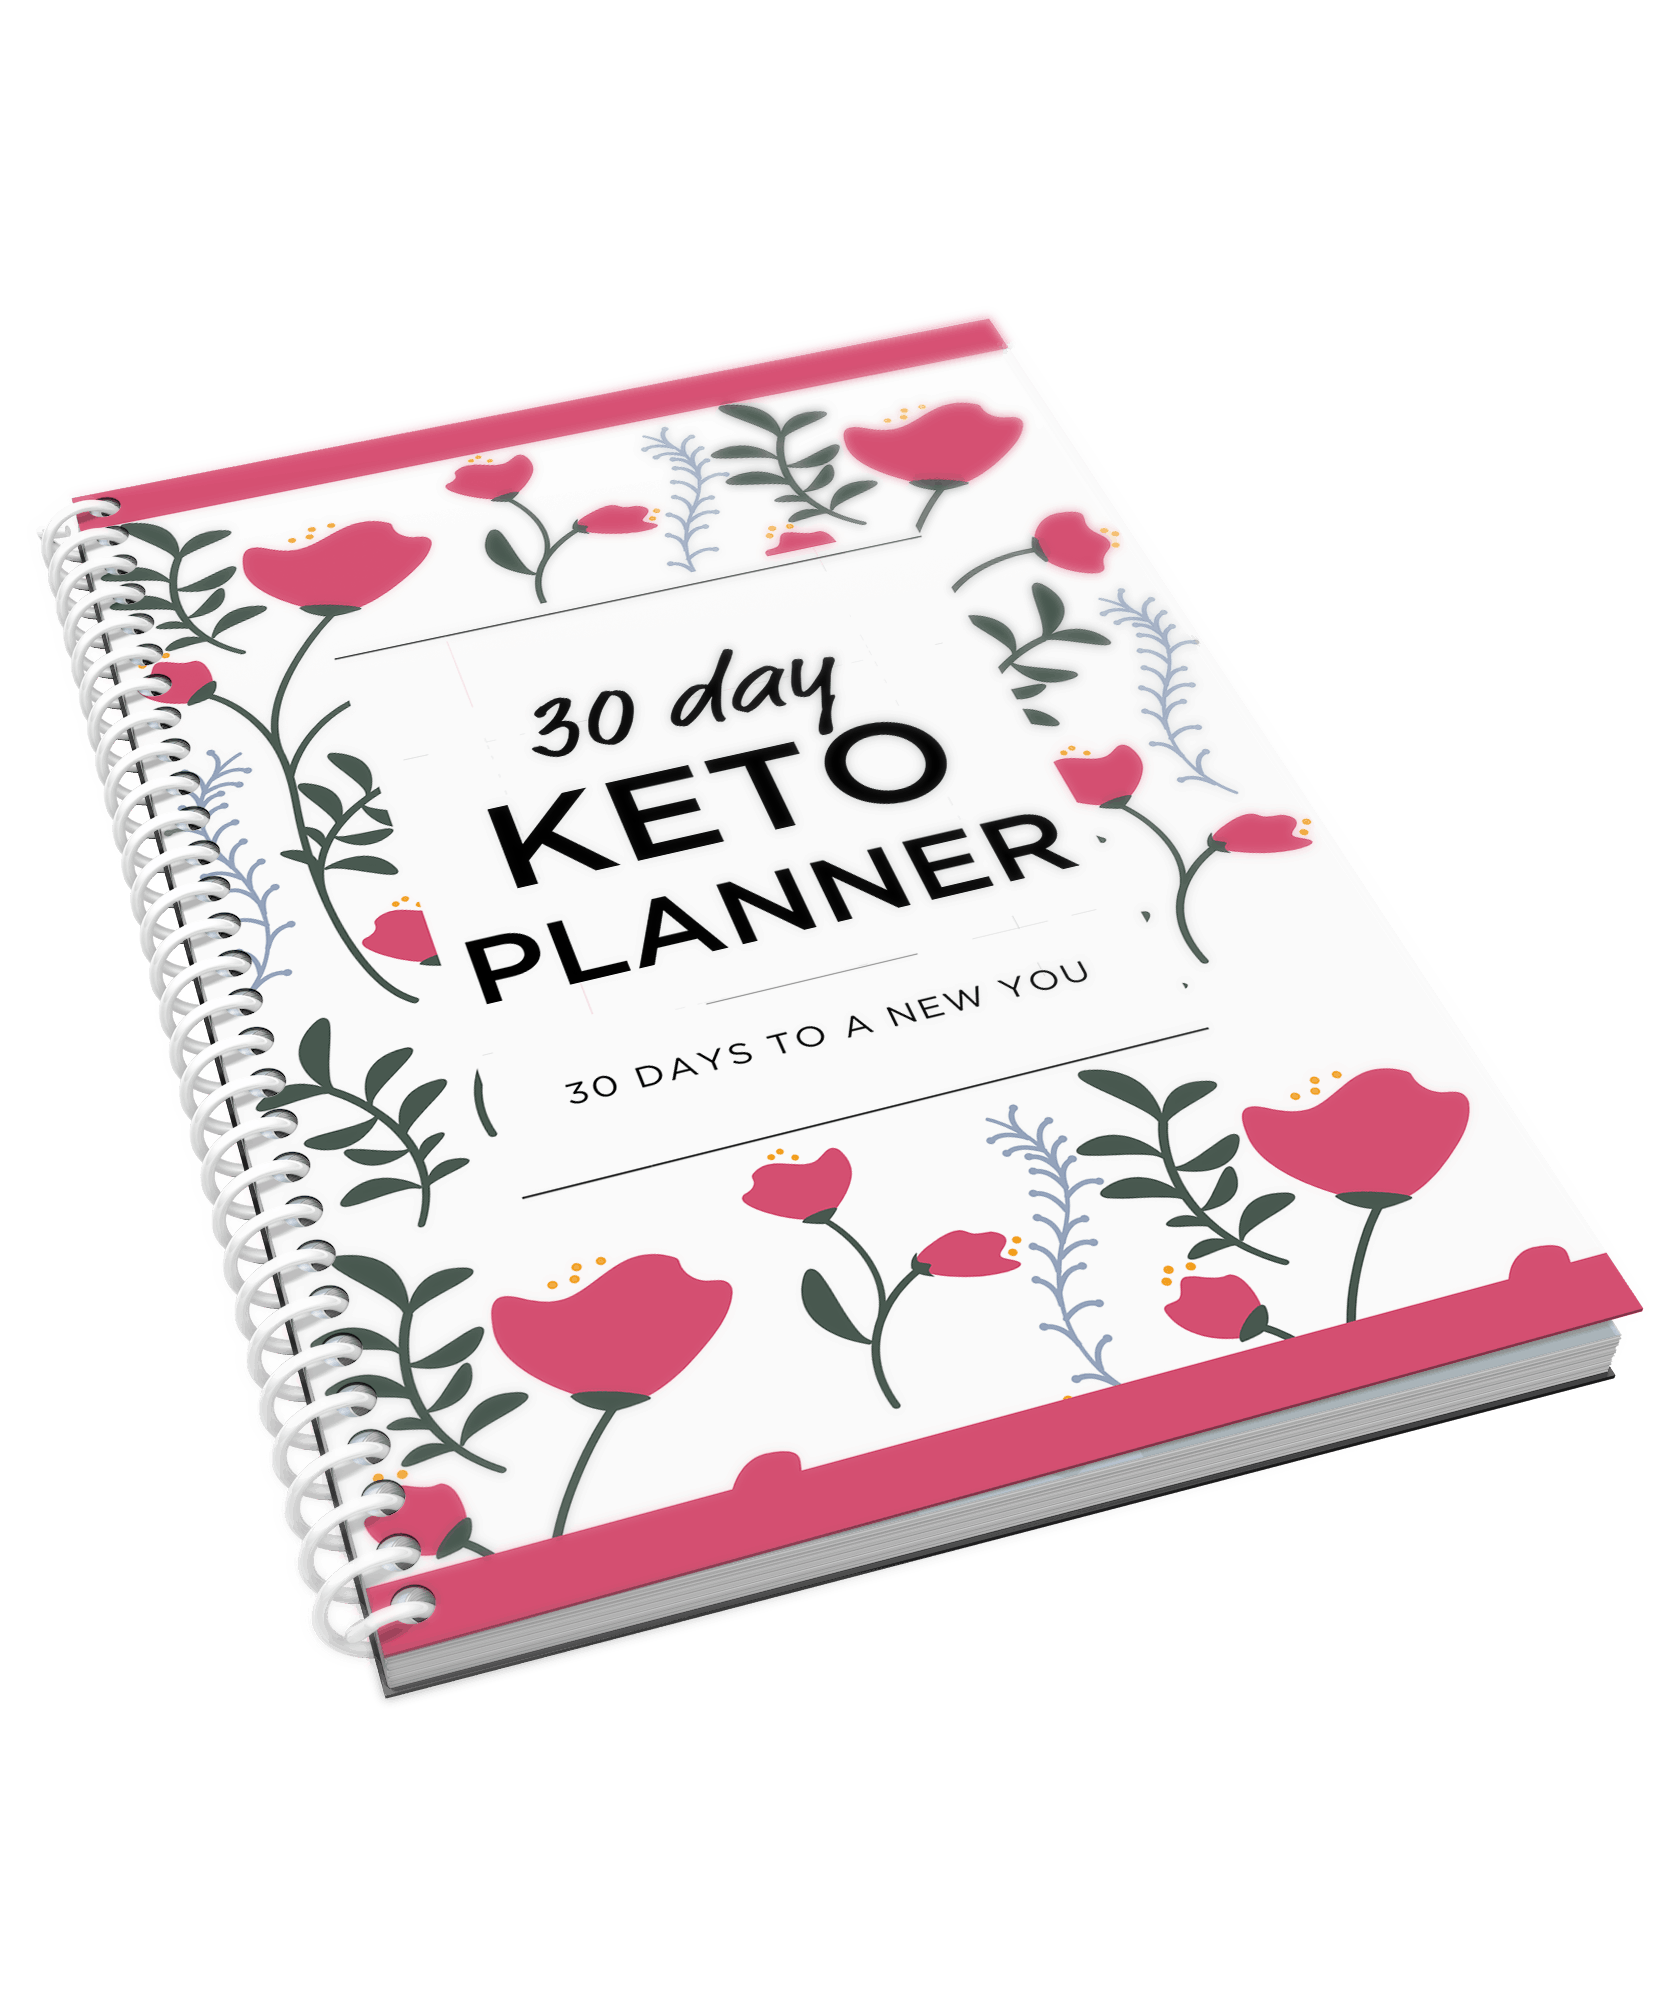 30 day keto planner cover